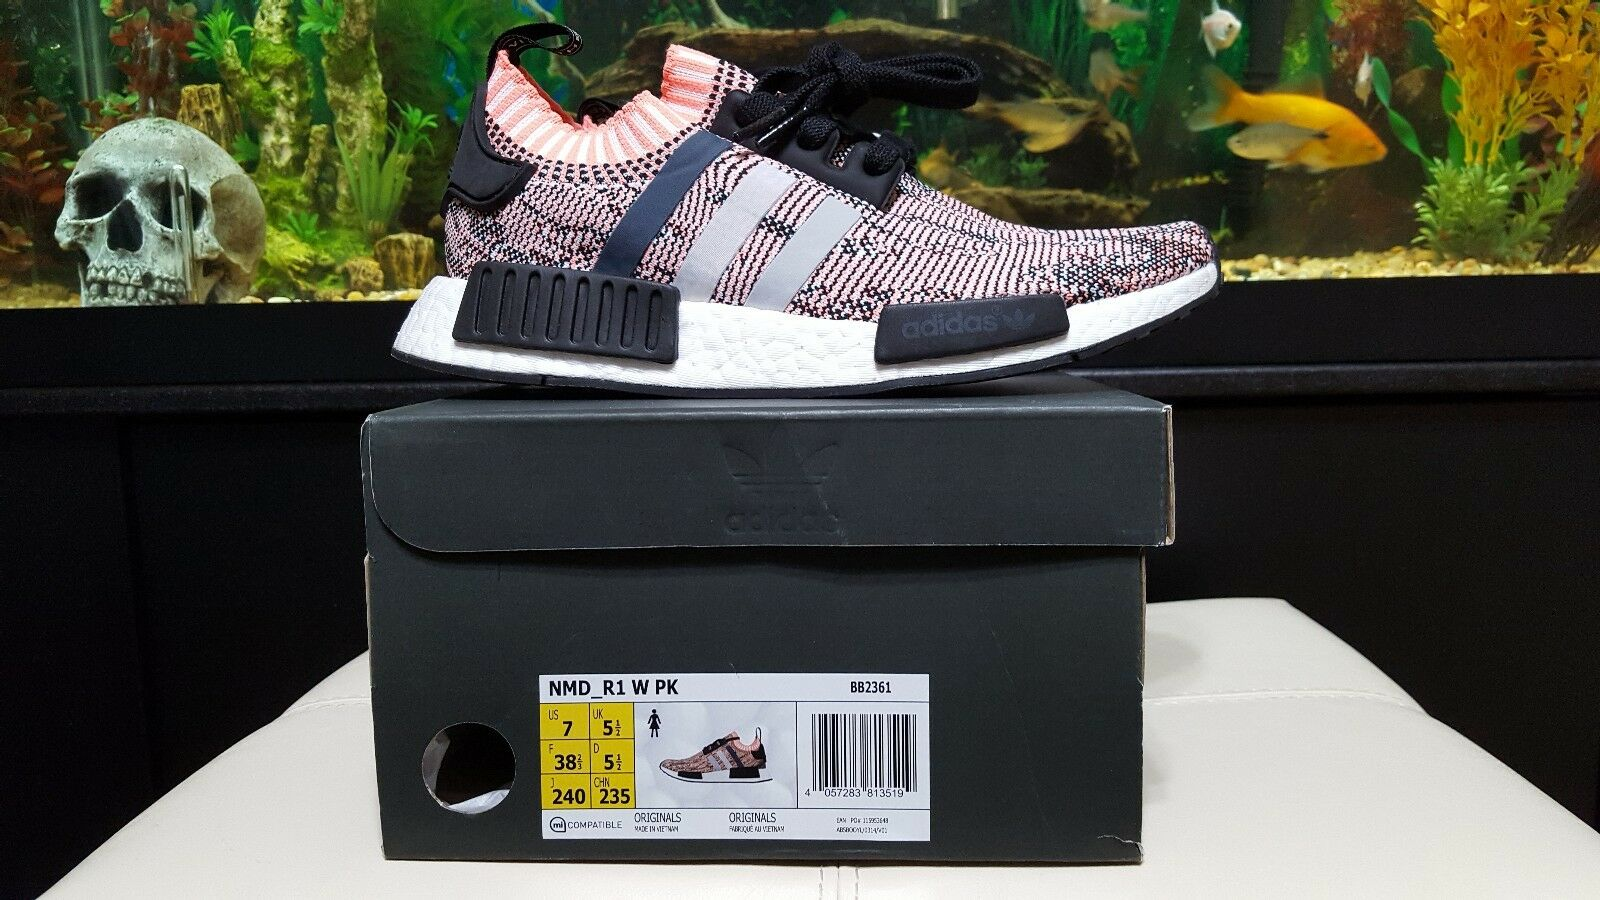 Adidas NMD R1 Primeknit TriColor Pink Salmon Glitch Womens Comfortable